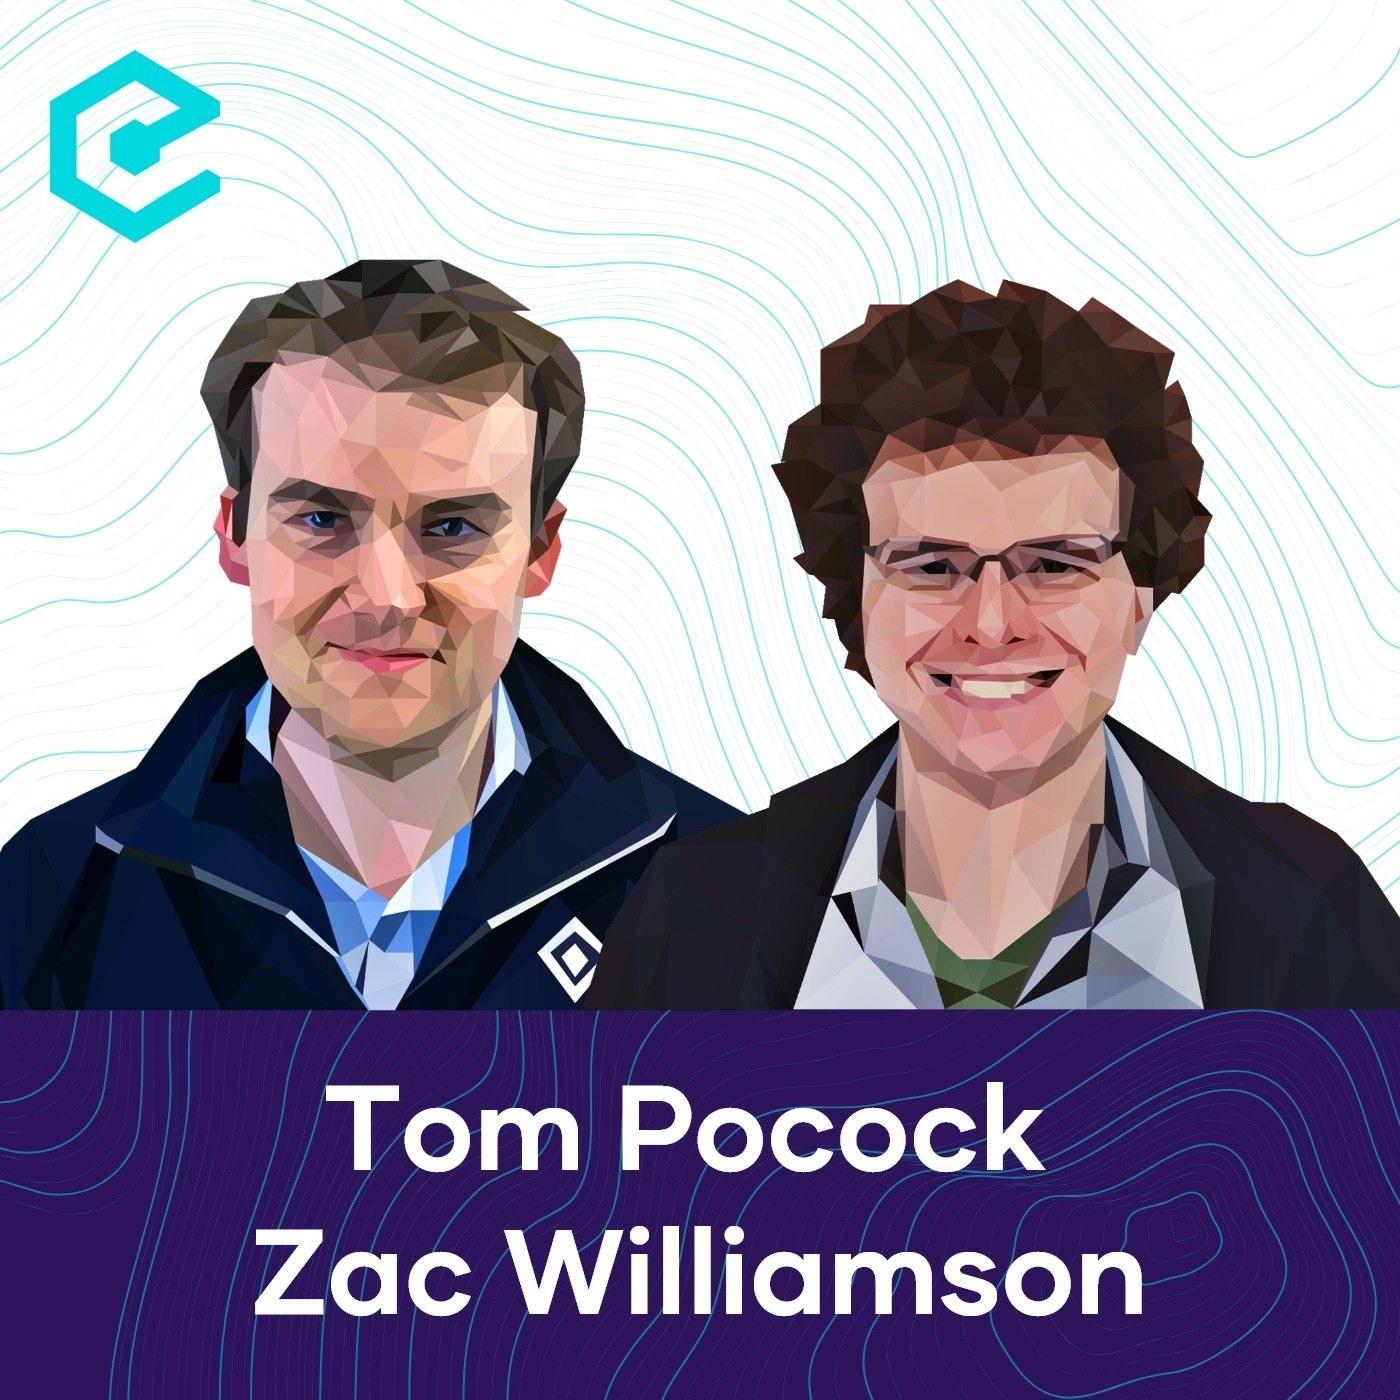 Tom Pocock & Zac Williamson: AZTEC Protocol – Bringing Zero-Knowledge Transactions to Ethereum